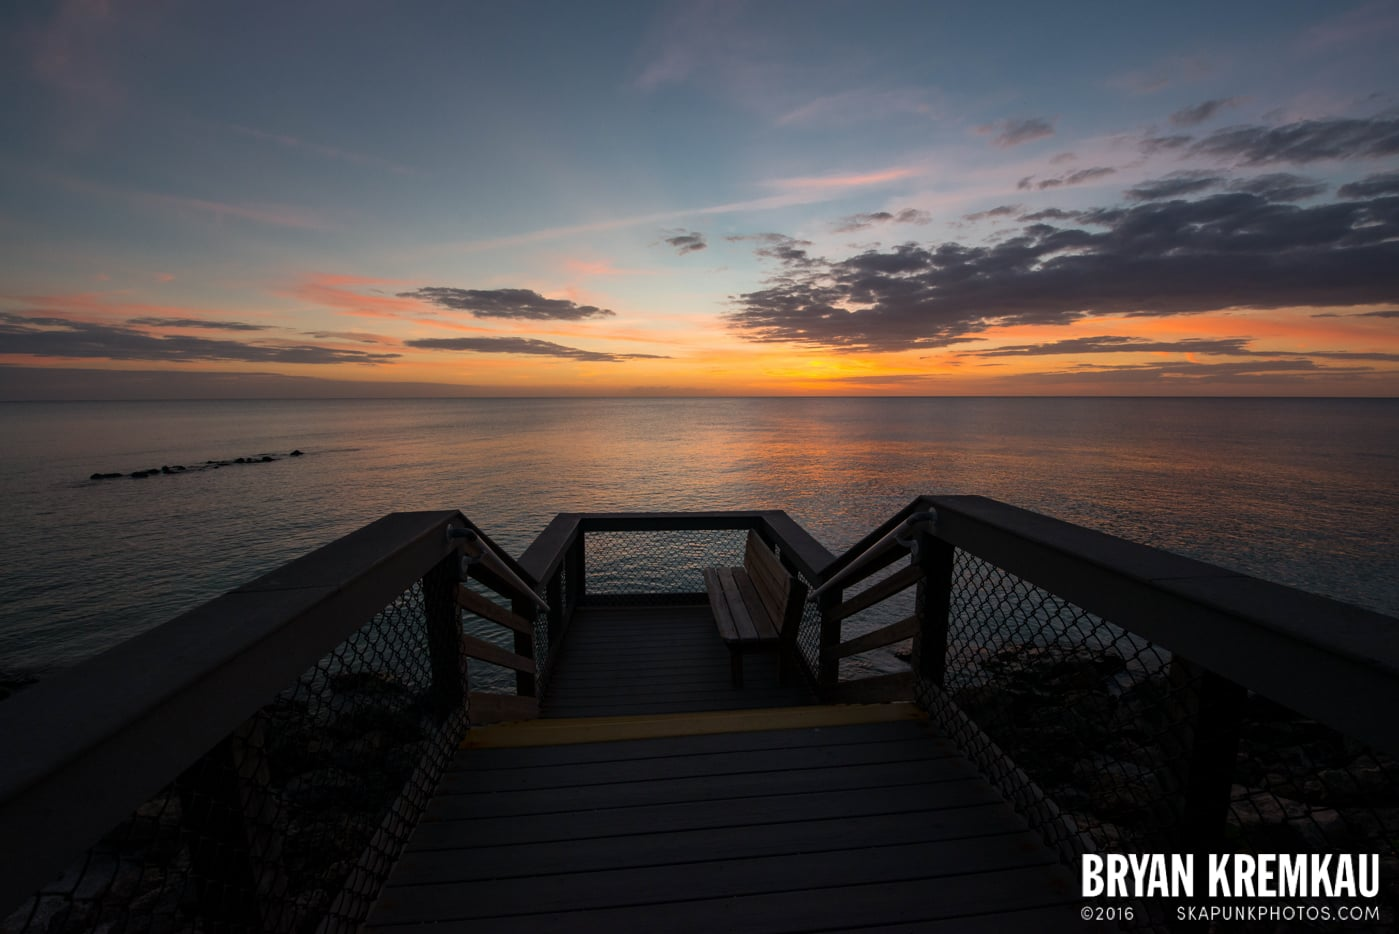 Sunsets, Astrophotography & Birds @ Venice, Florida - 10.25.14 - 11.5.14 (63)